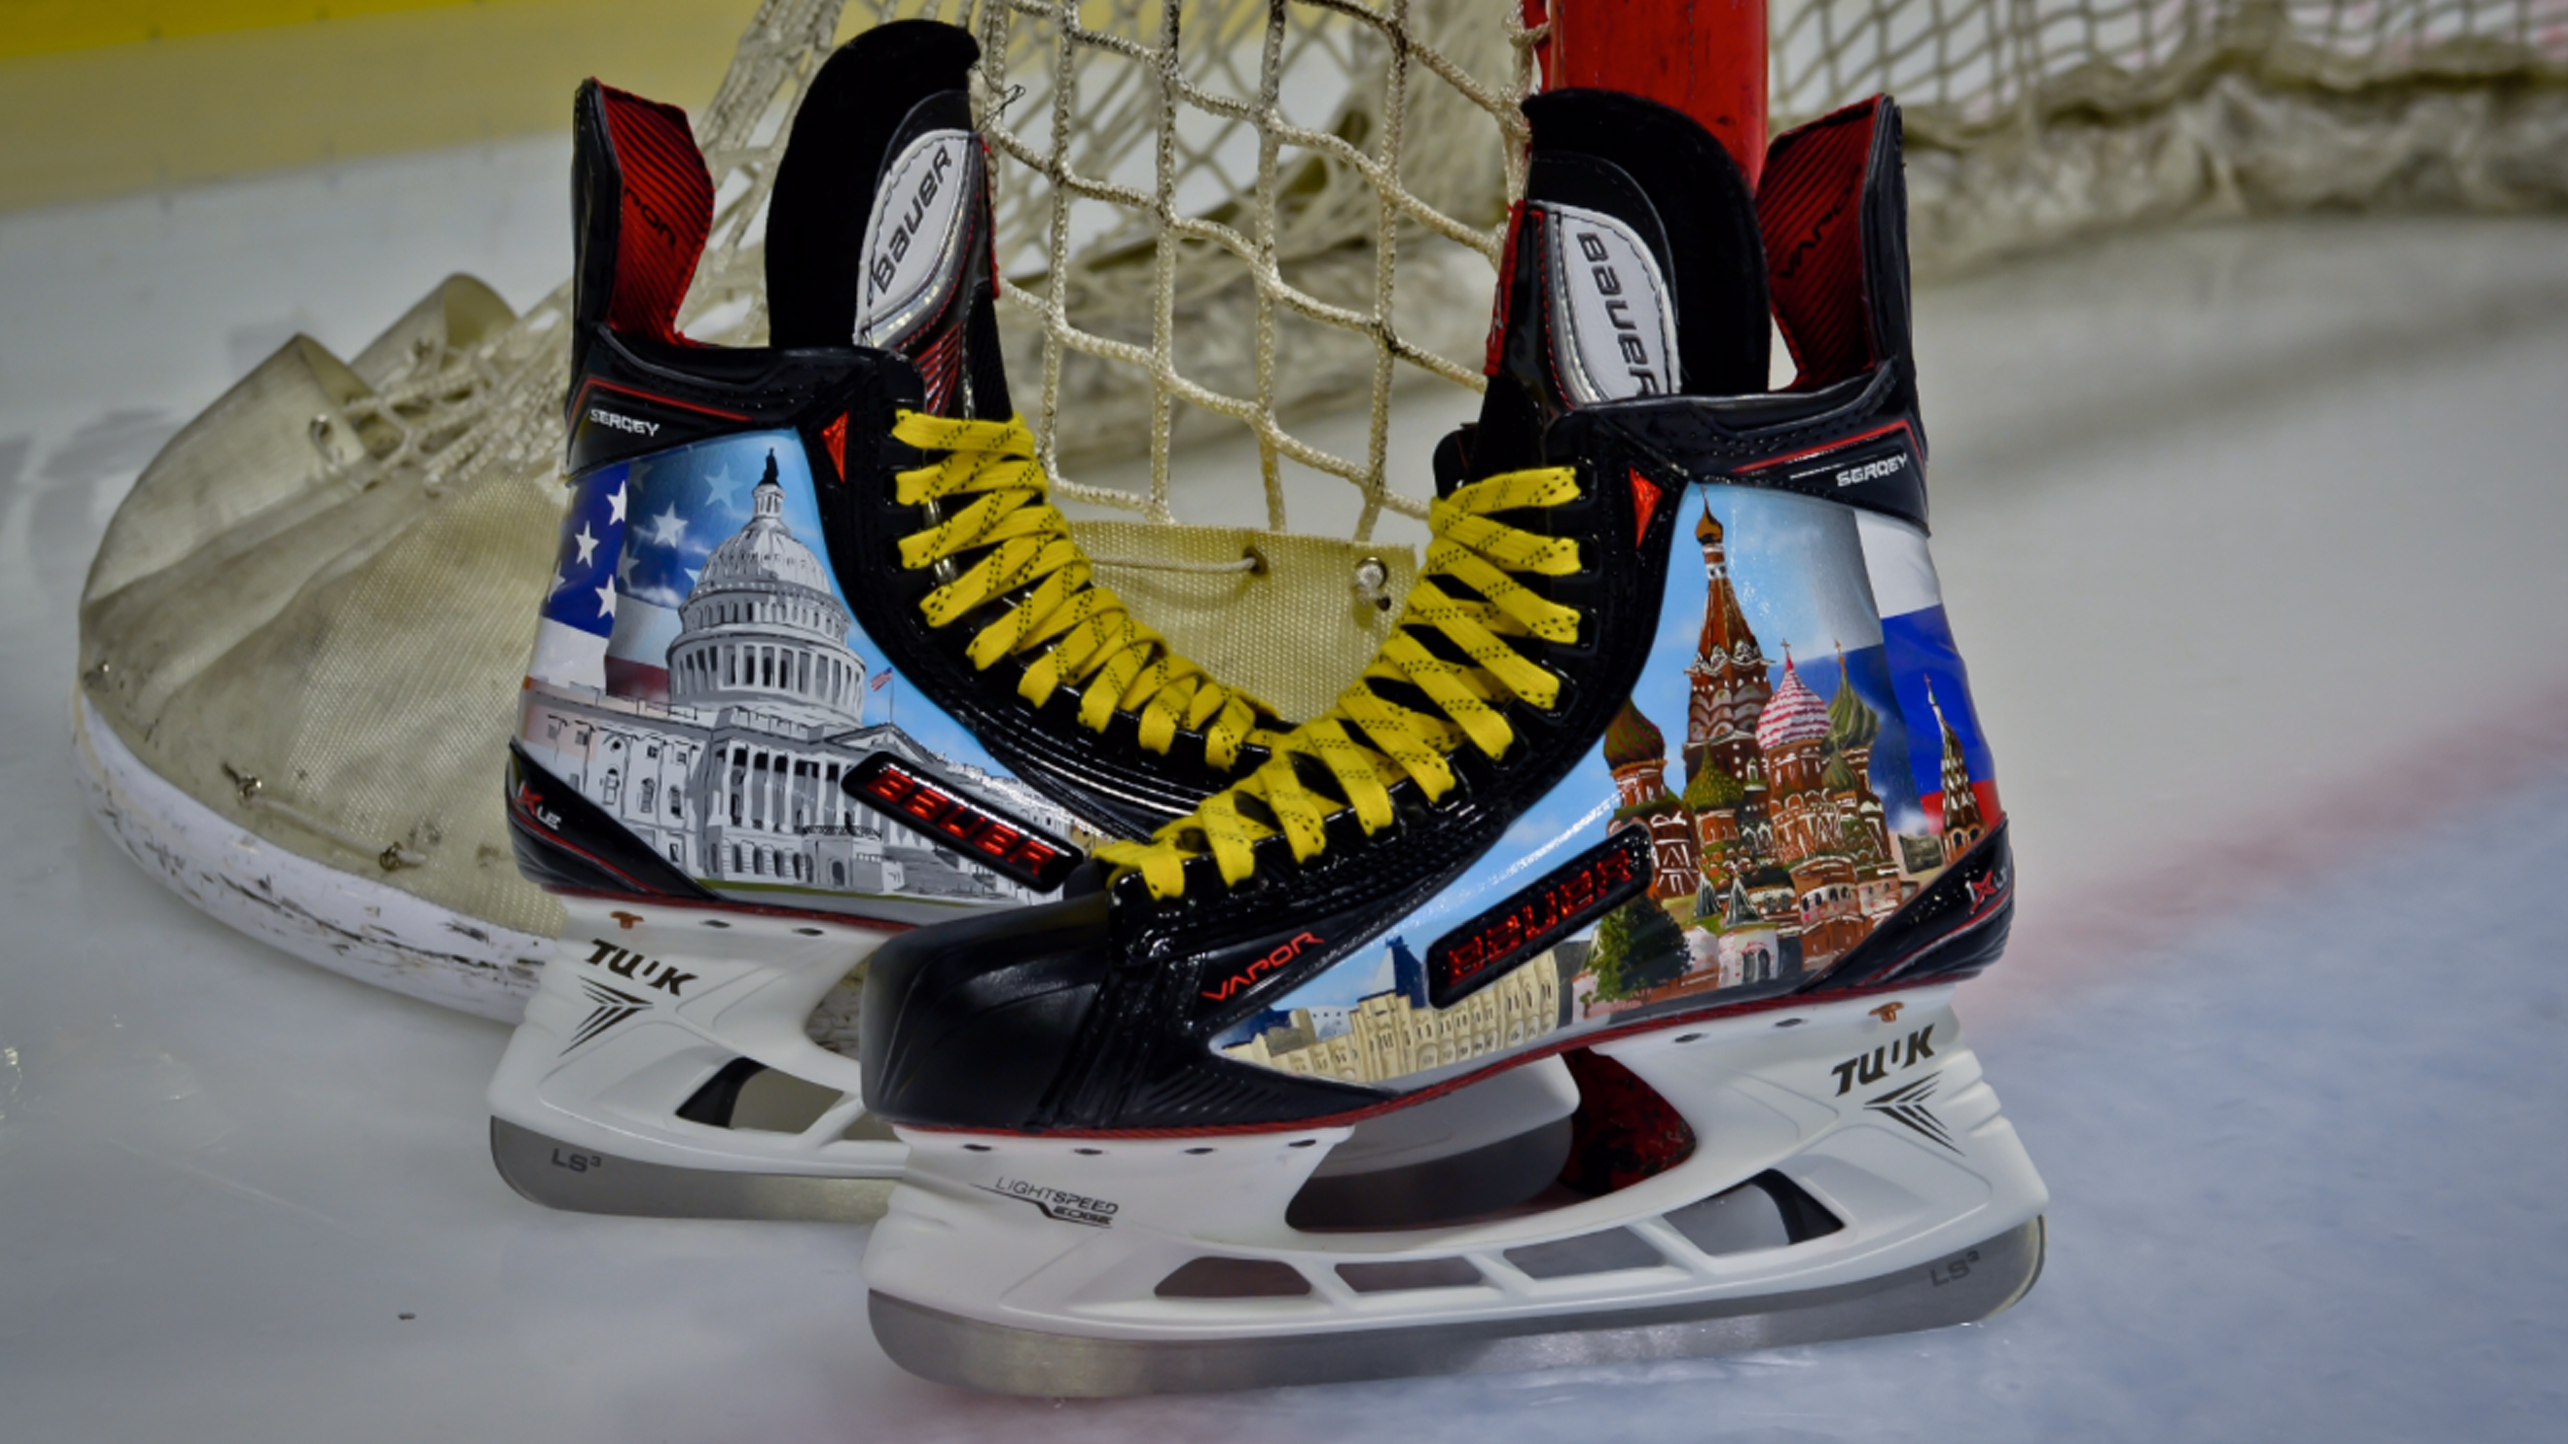 Alex Ovechkin will wear these Russia-America skates in warmup Thursday before they're auctioned for charity (Washington Capitals photo).